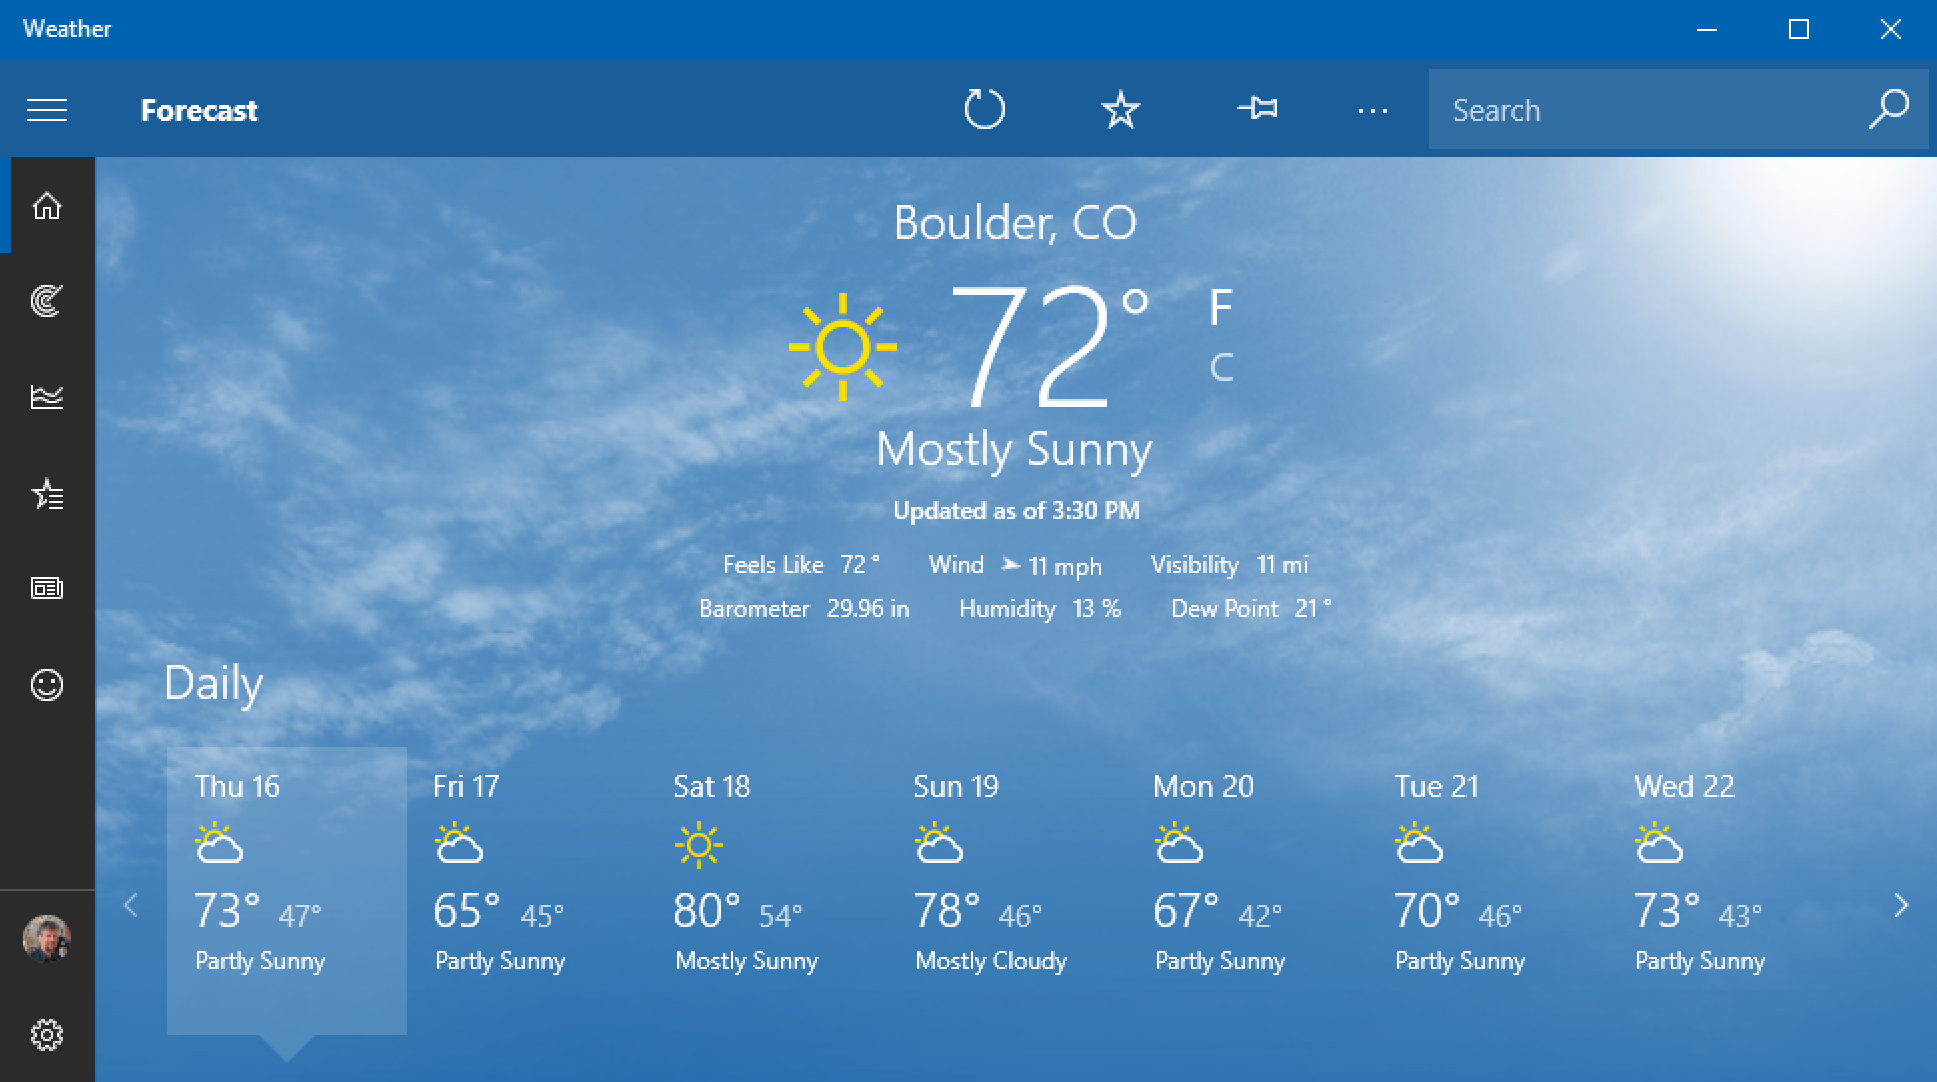 boulder, co weather in msn weather program